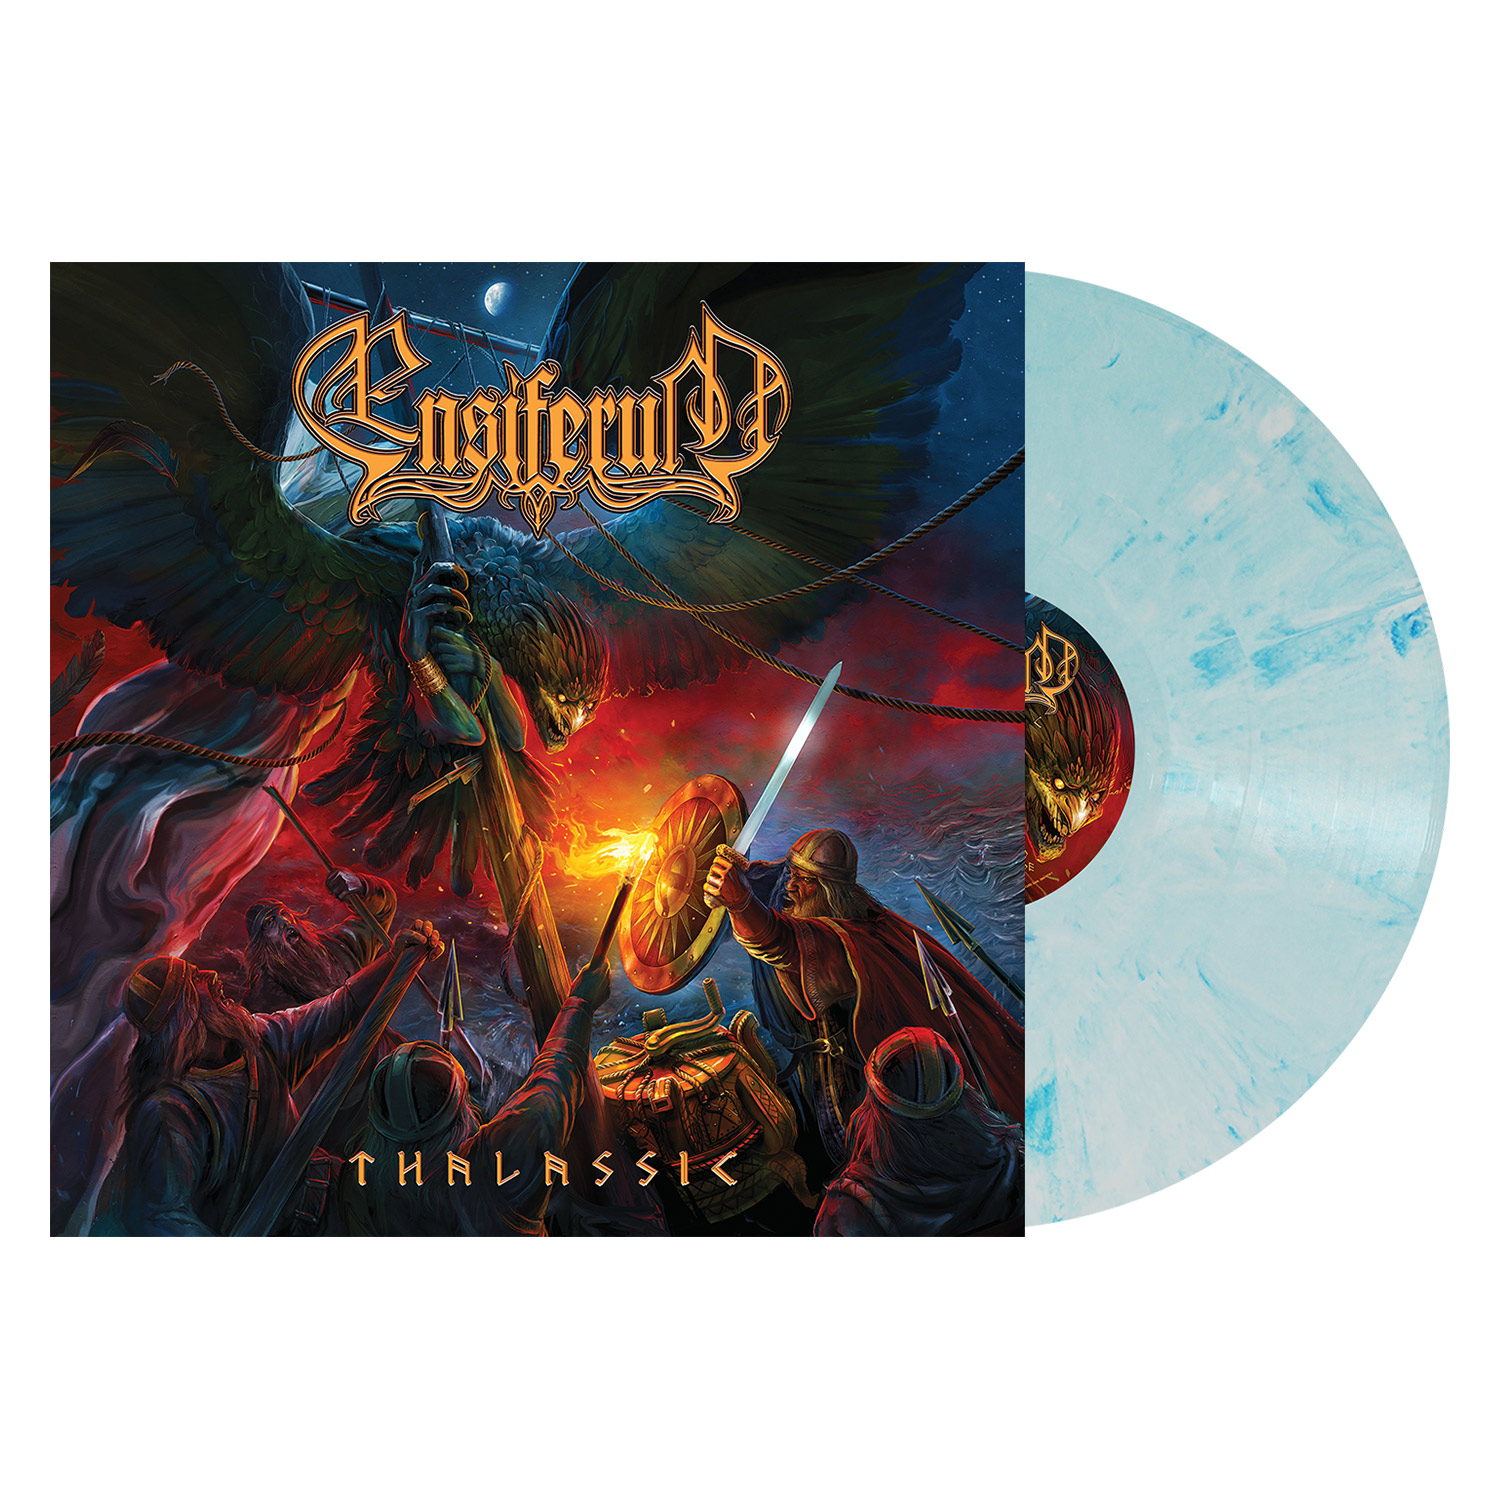 Thalassic - LP Bundle